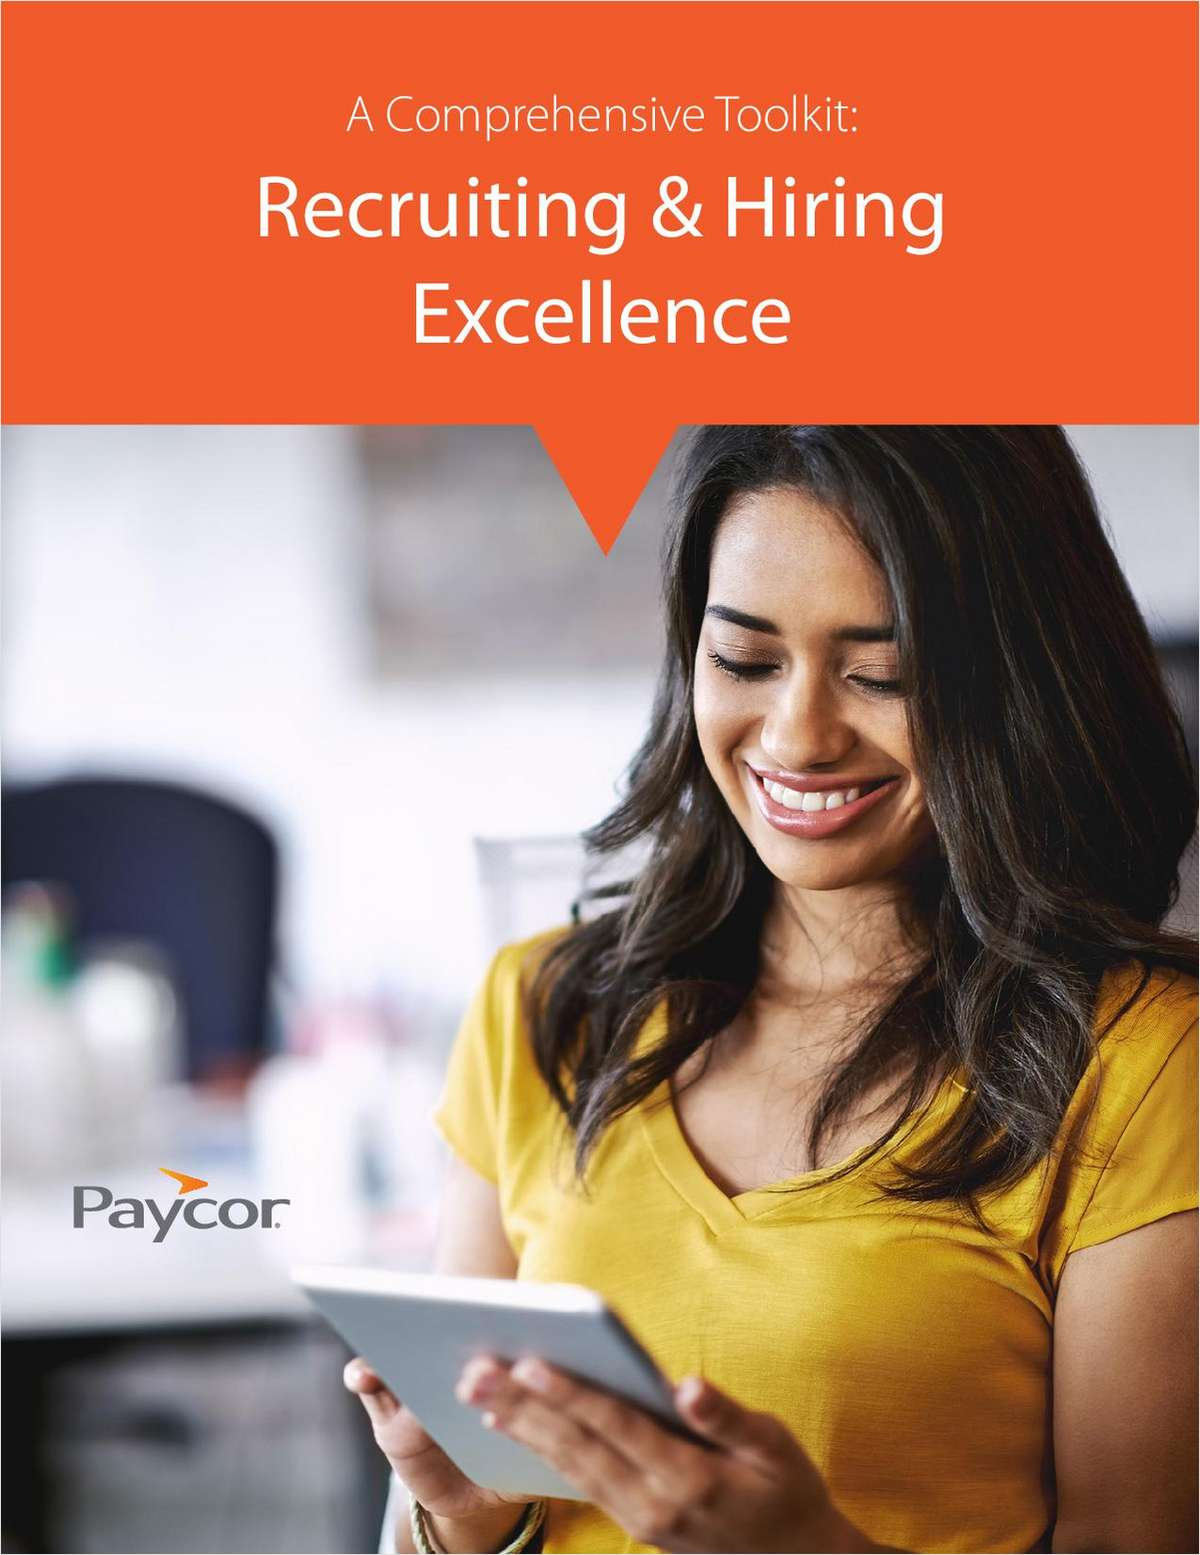 A Comprehensive Toolkit to Recruiting & Hiring Excellence